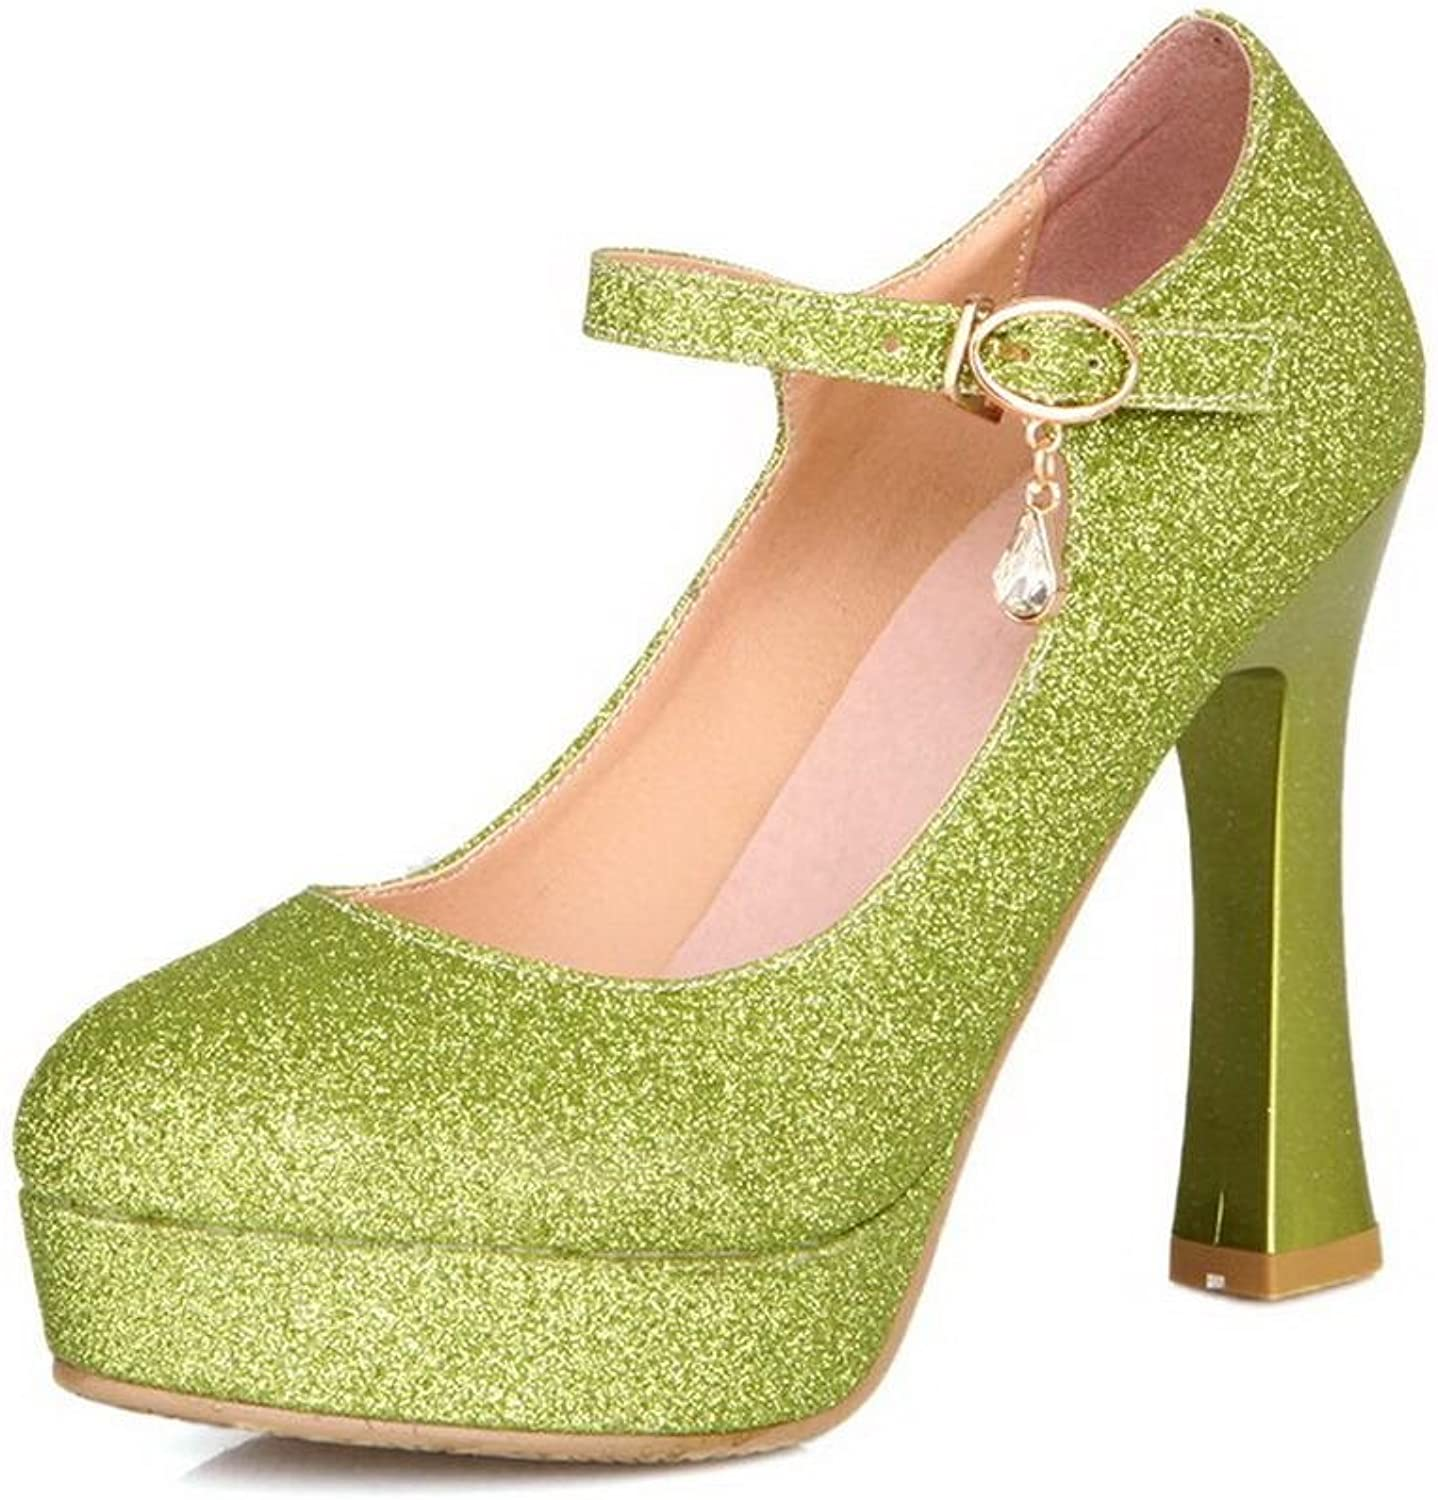 WeenFashion Women's Frosted High Heels Round Closed Toe Solid Buckle Pumps-shoes